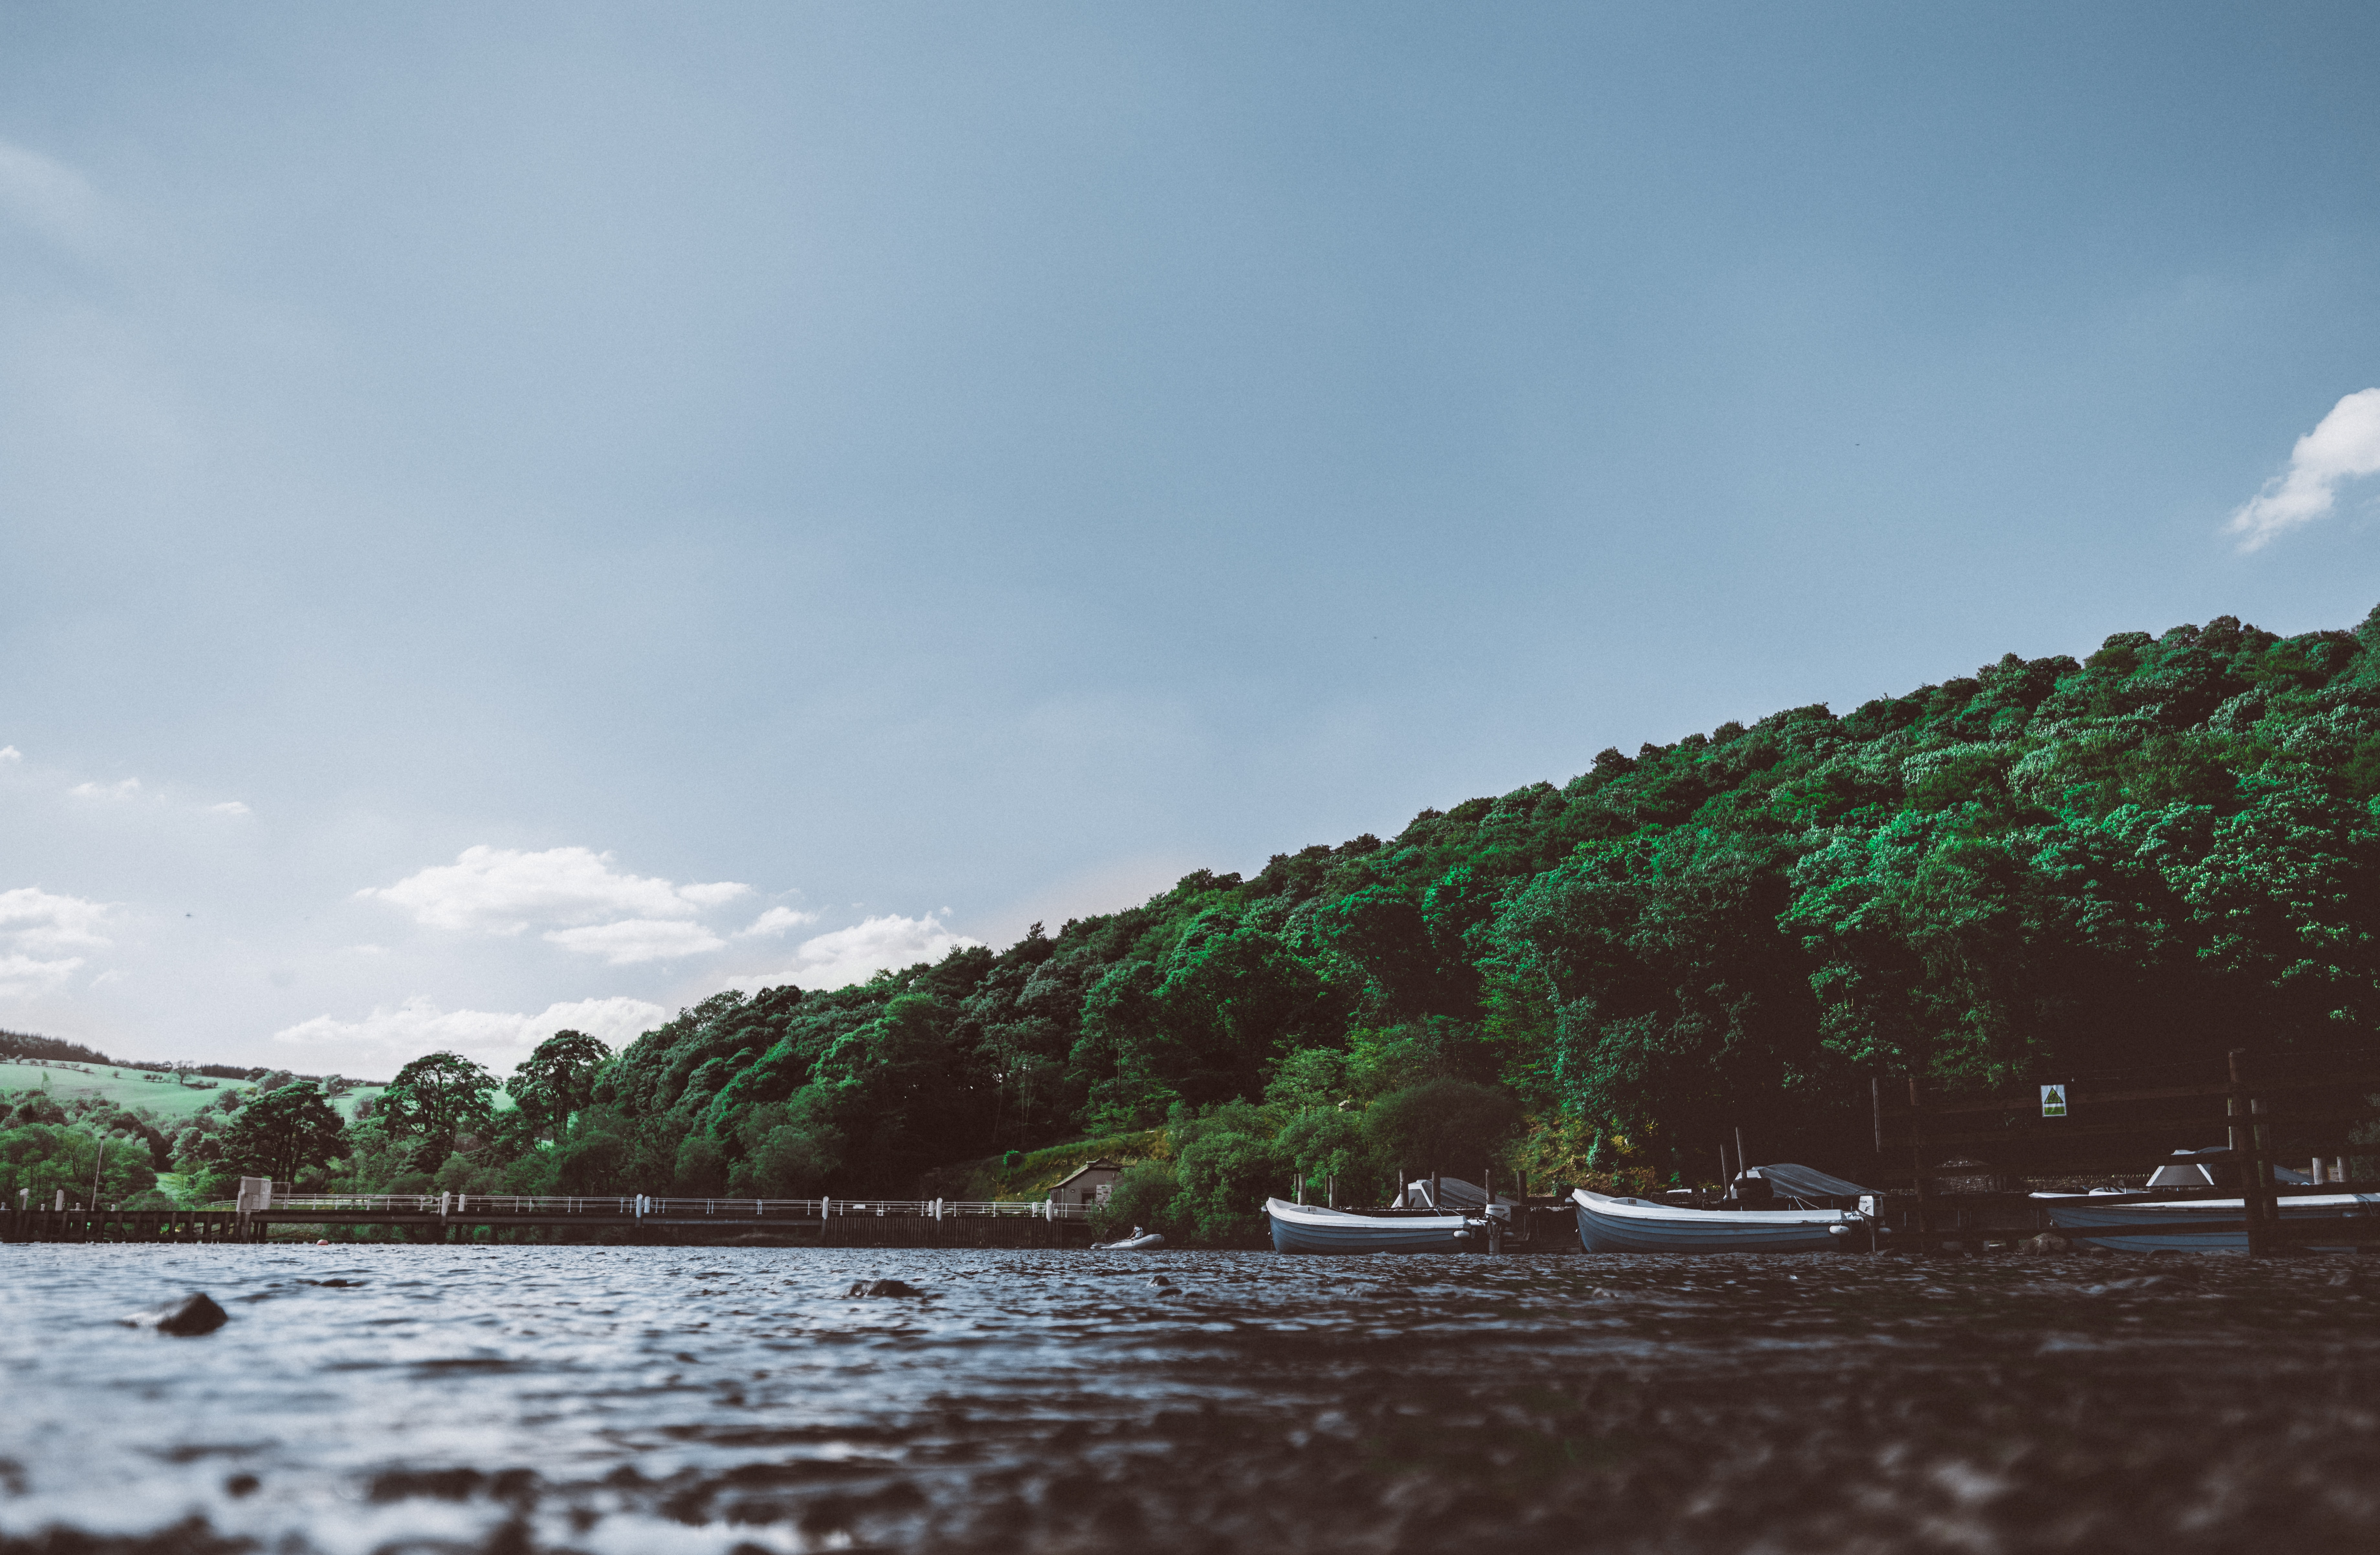 boat near dock surrounded with tall trees